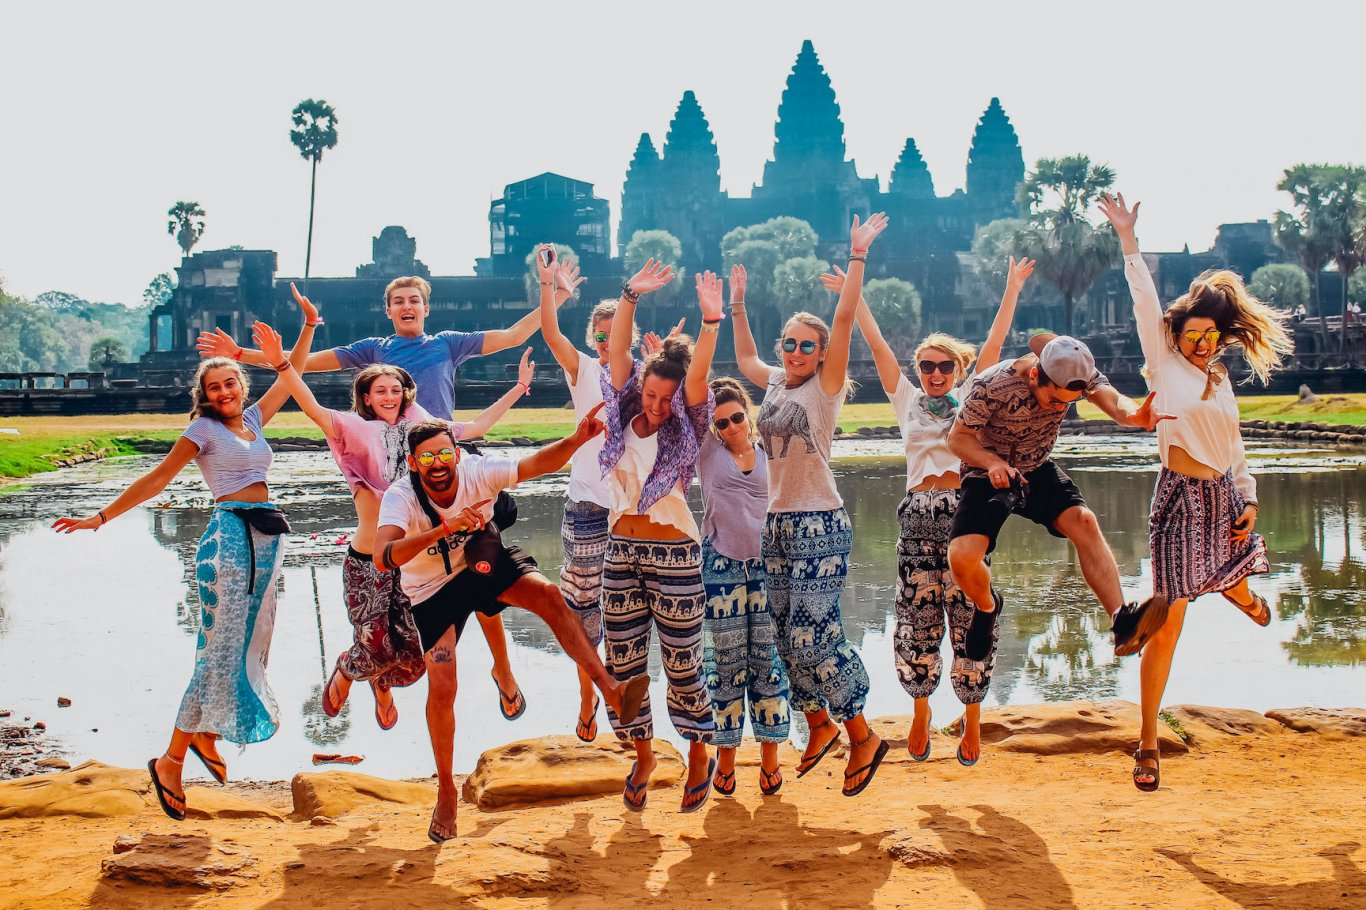 Group photo jumping, Angkor Wat